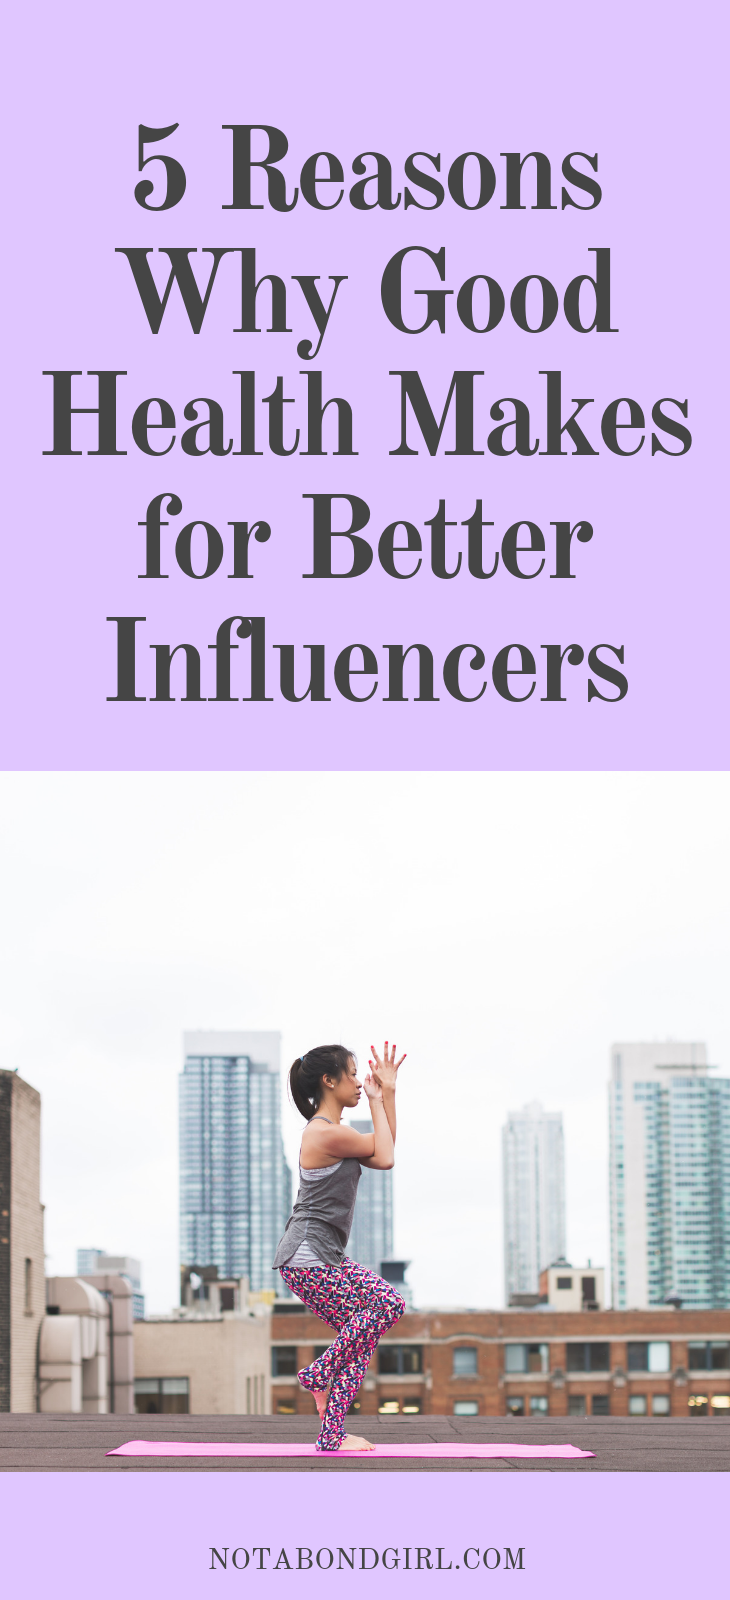 5 Reasons Why Good Health Makes for Better Influencers